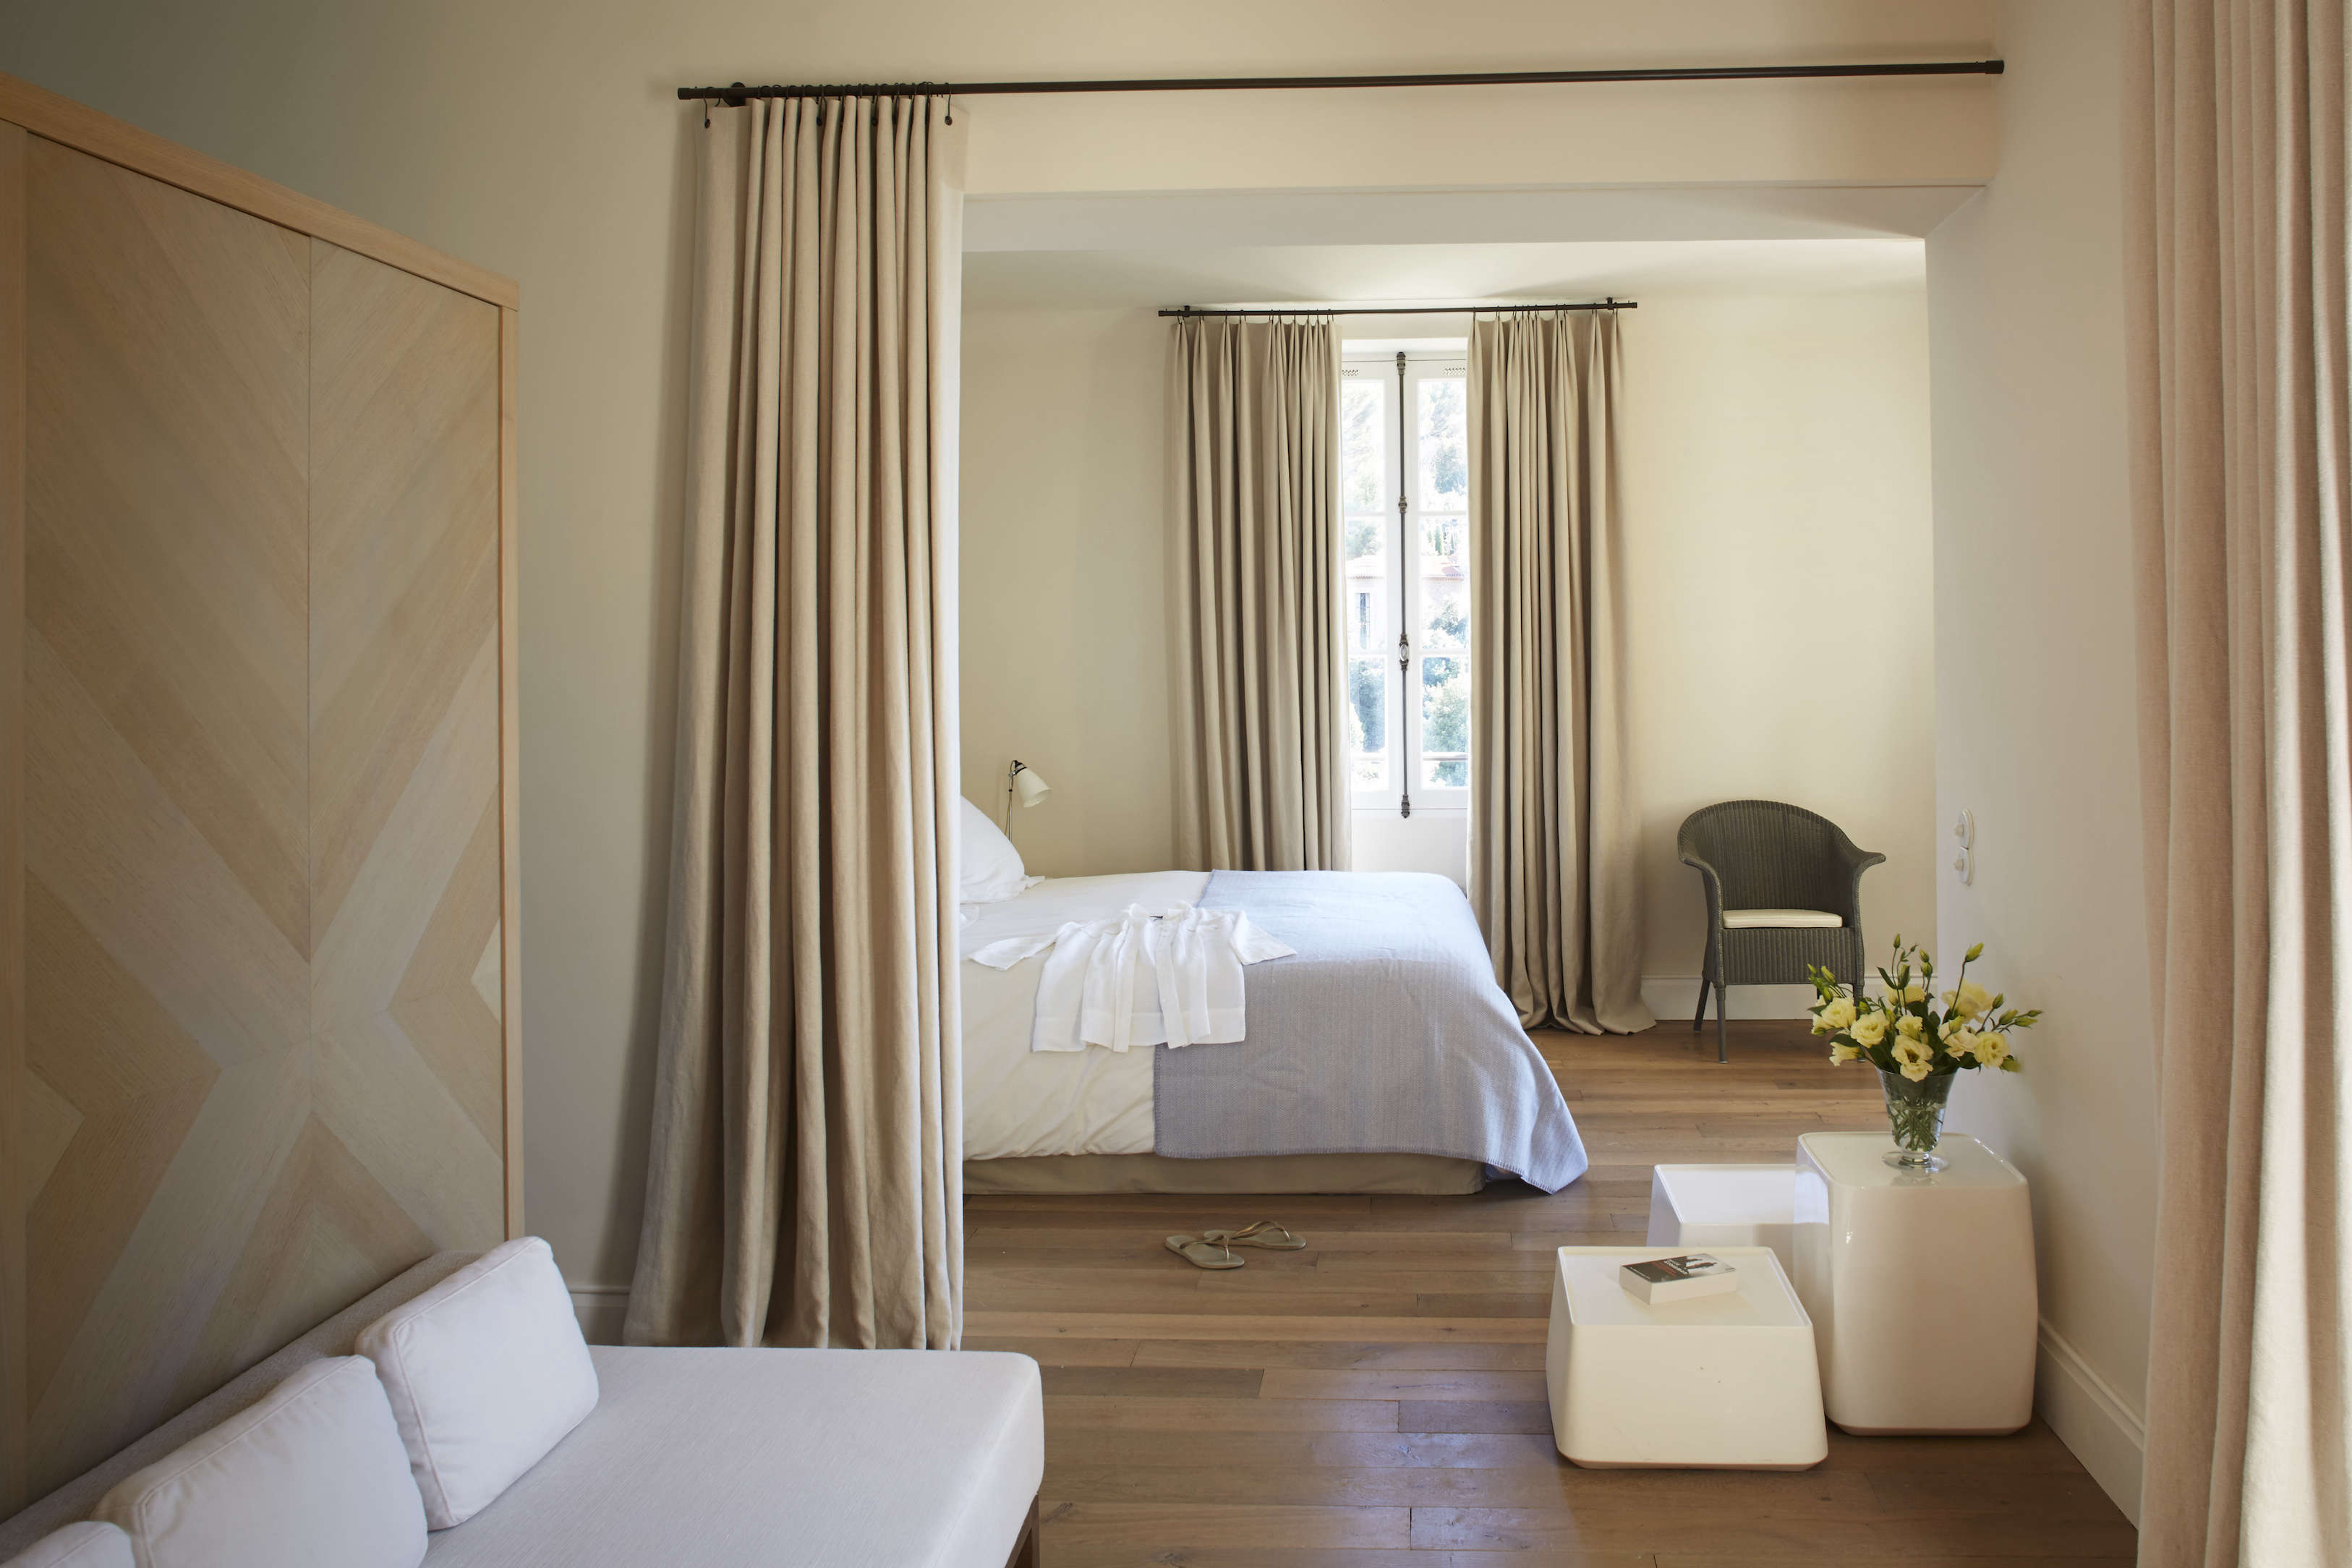 The master suite has a sitting area with a meridiènne, a low sofa that stands against a stained oak wardrobe.